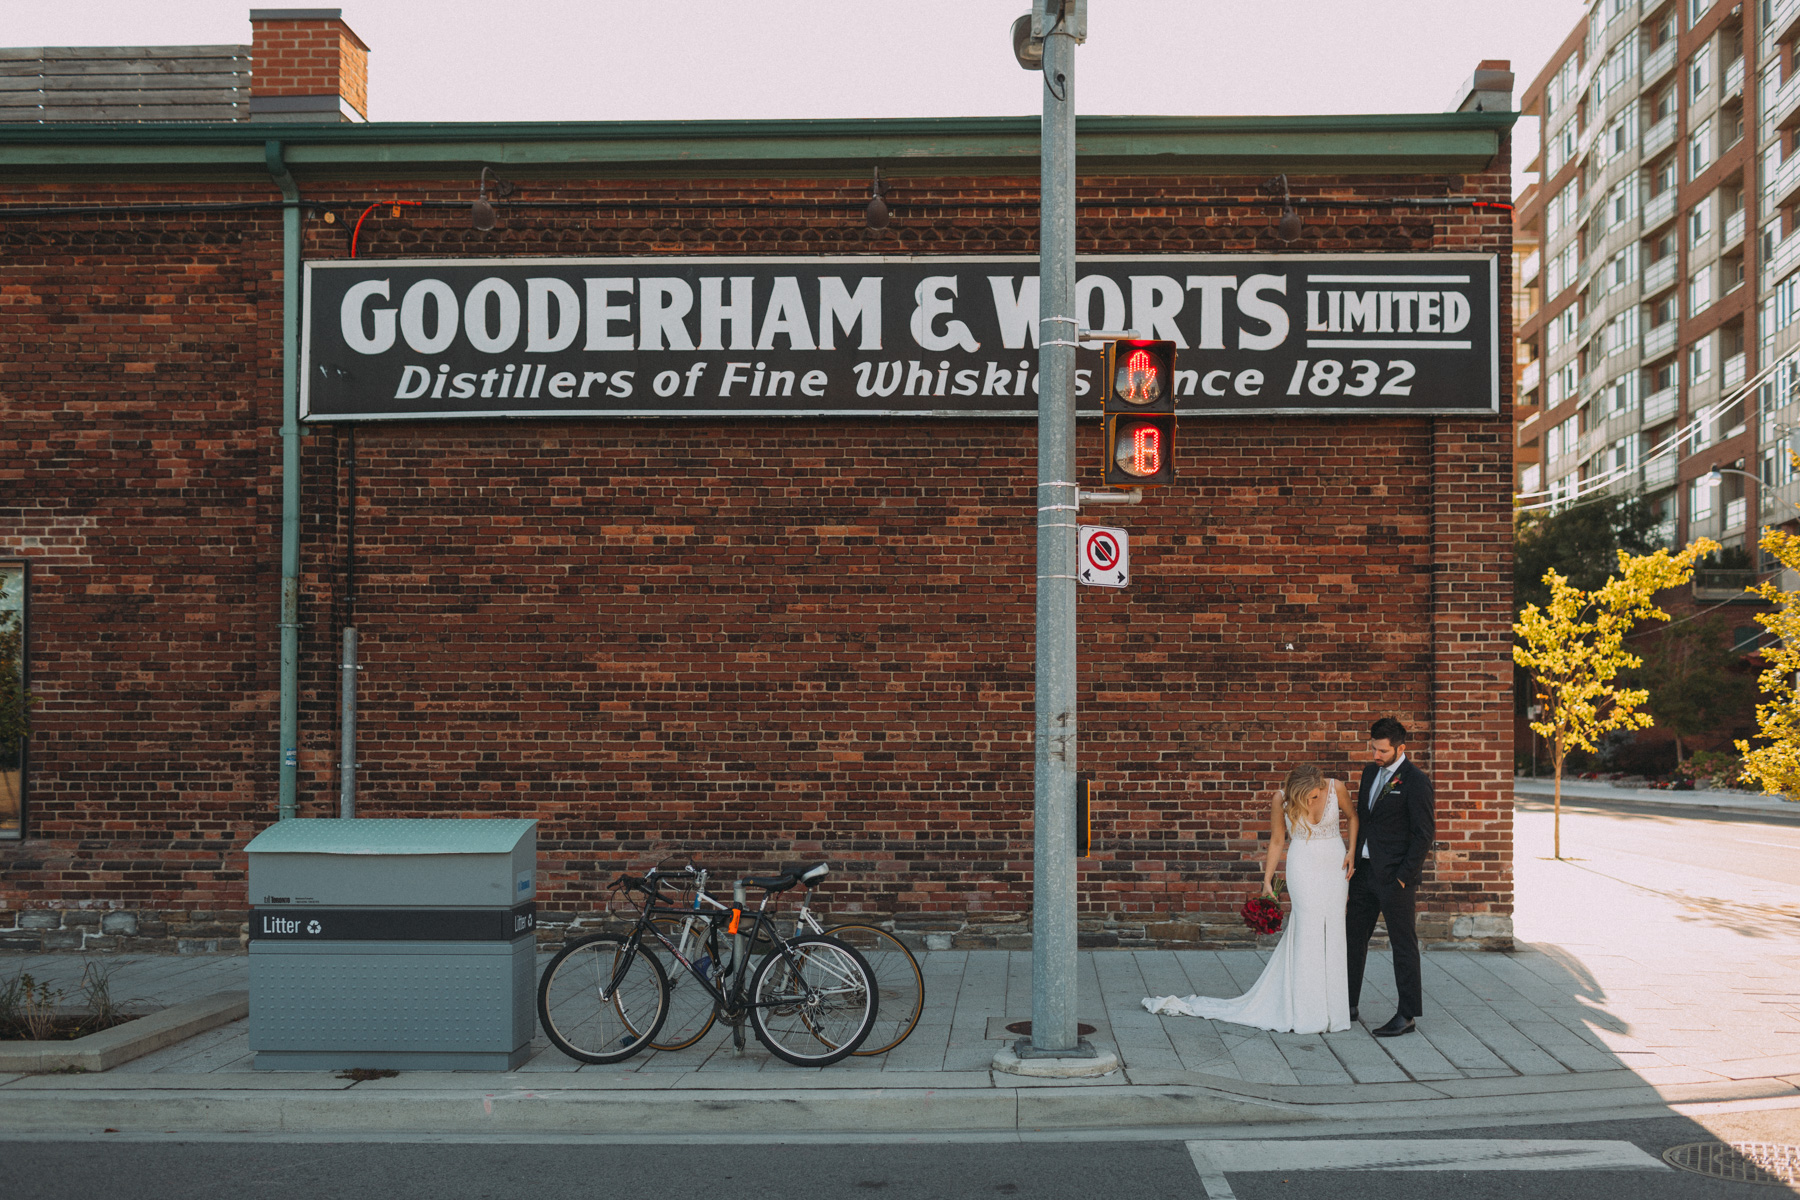 Thompson-Landry-Gallery-wedding-photos-Toronto-by-Sam-Wong-of-Artanis-Collective-Polina-Zarko_0037.jpg